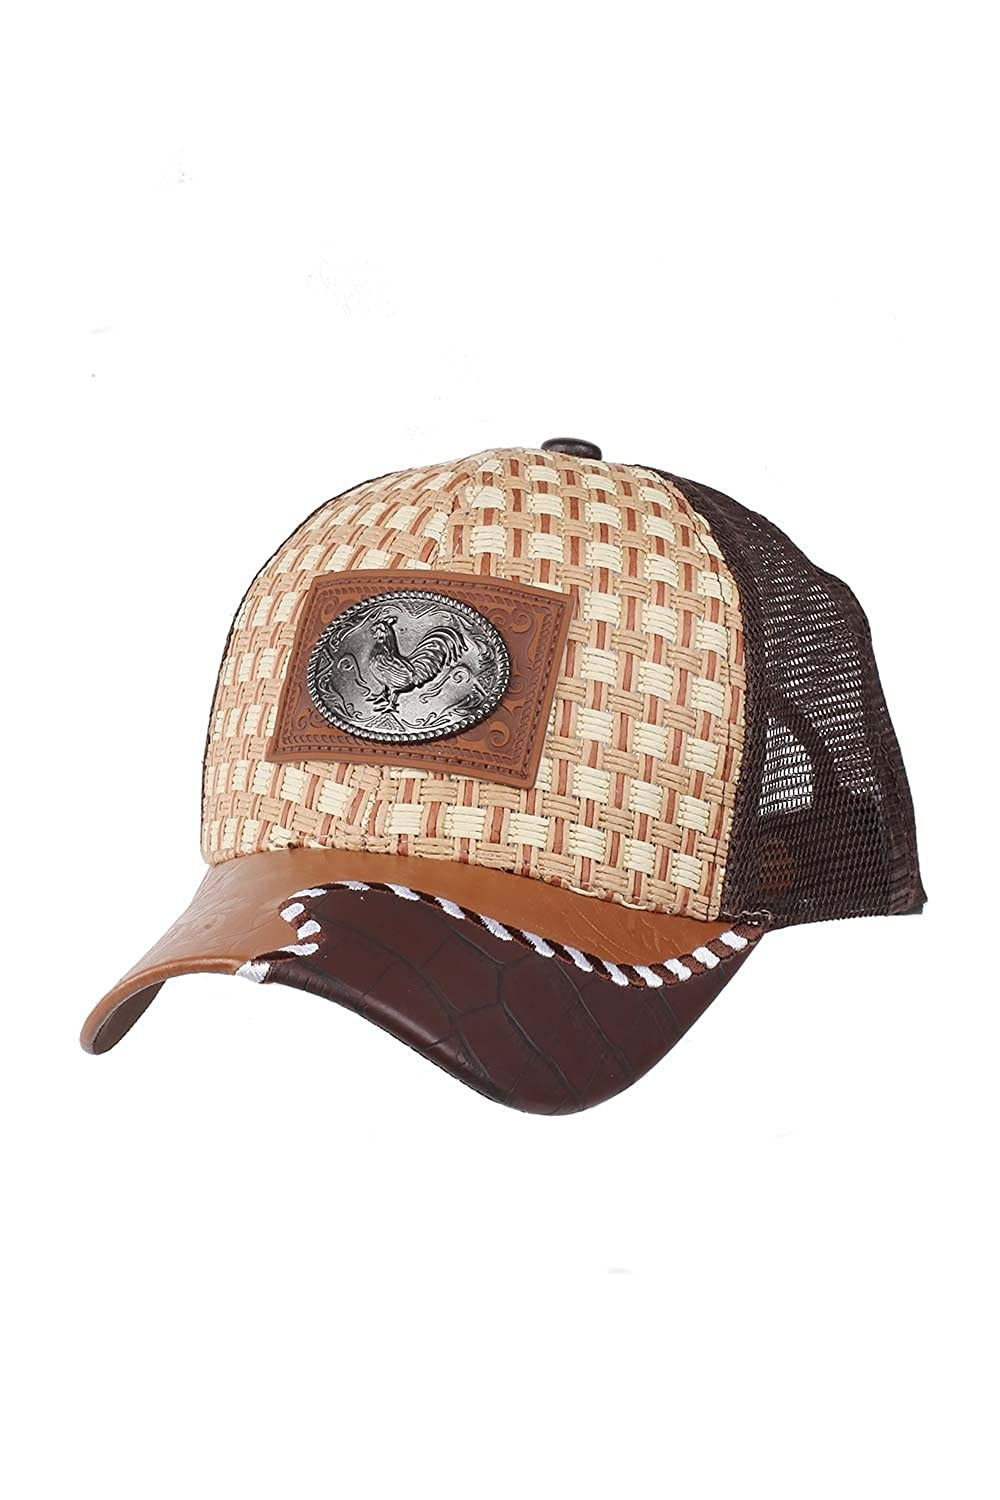 Straw Rooster Chicken Metal Symbol Mesh Patched Trucker Adjustable Baseball Cap Hat USA Headware